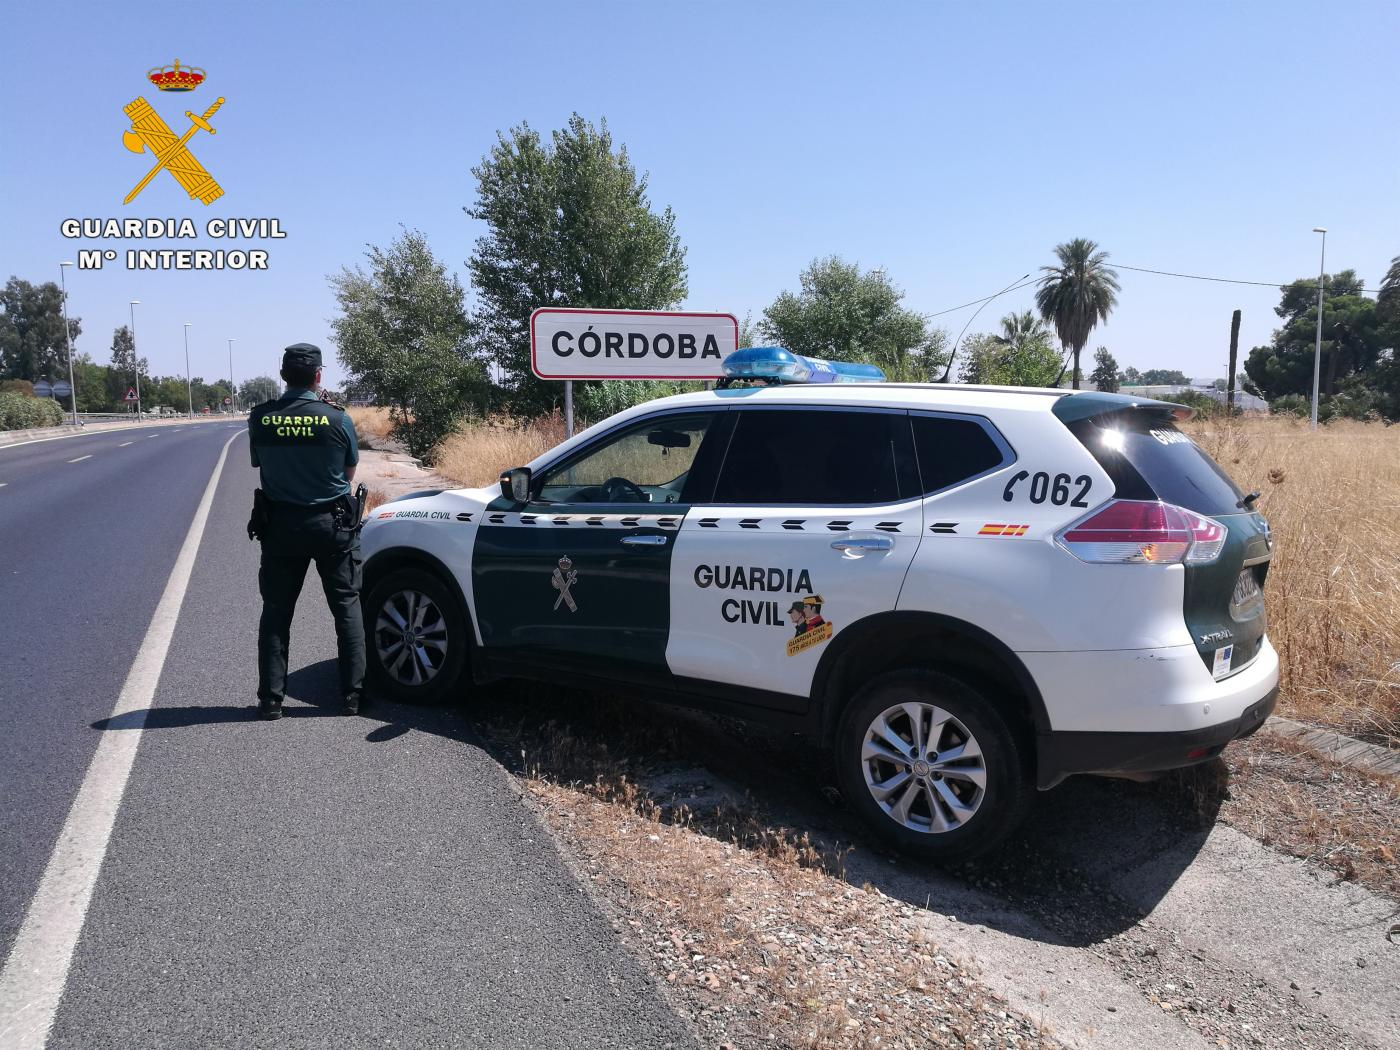 Una patrulla de la Guardia Civil en Córdoba. Europa Press